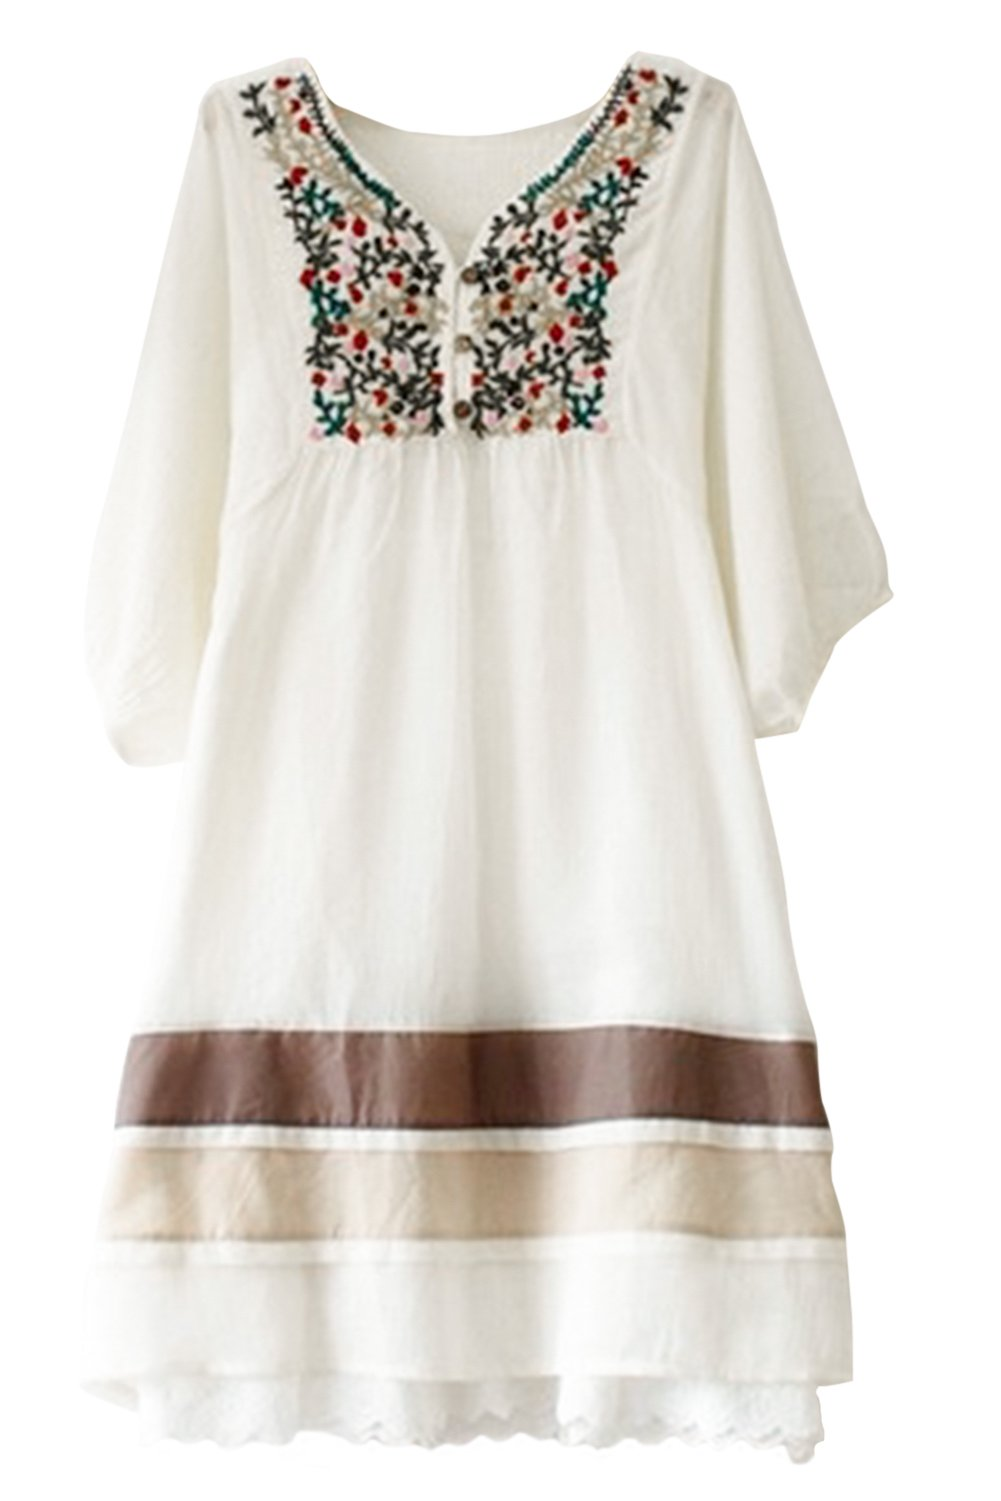 Asher Womens V Neck Mexican Embroidered Peasant Bohemian Dress (One Size, Apricot) by AsherFashion